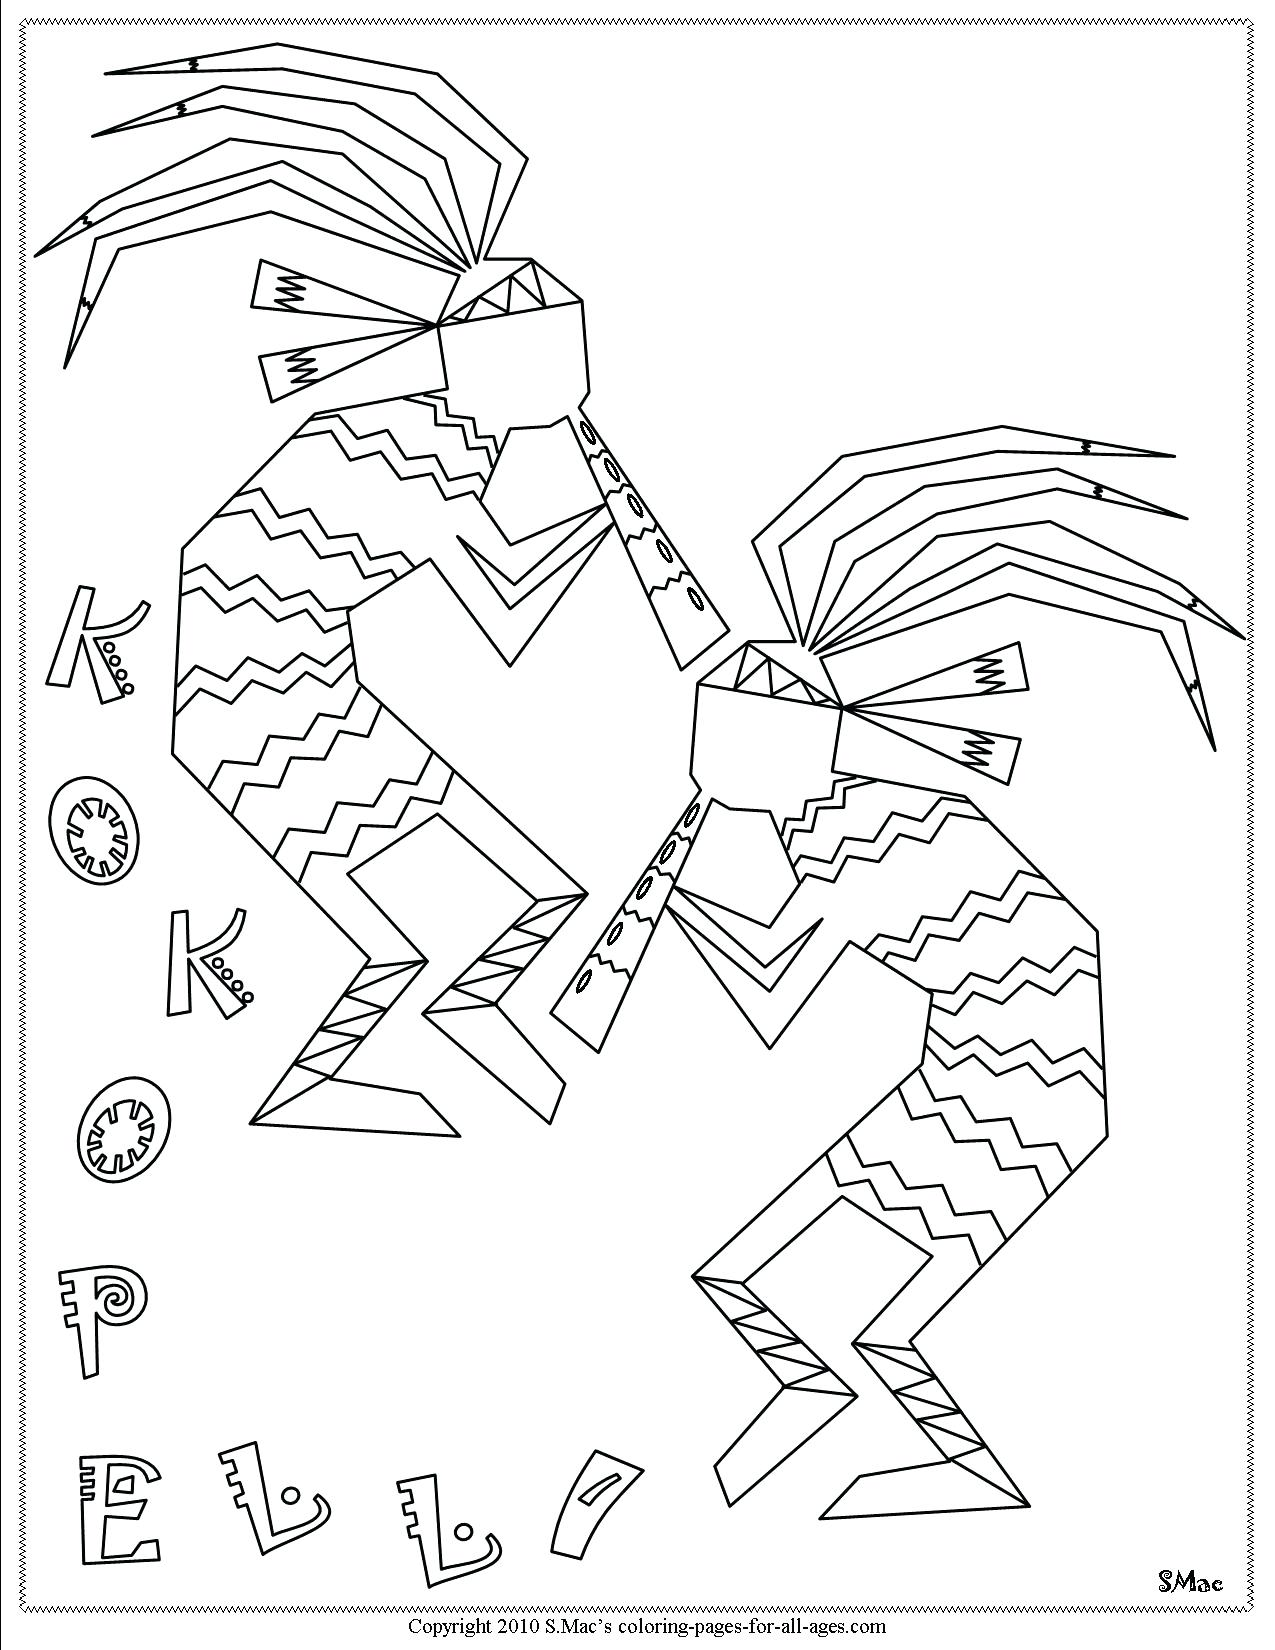 Native American Symbols Coloring Pages At Getcolorings